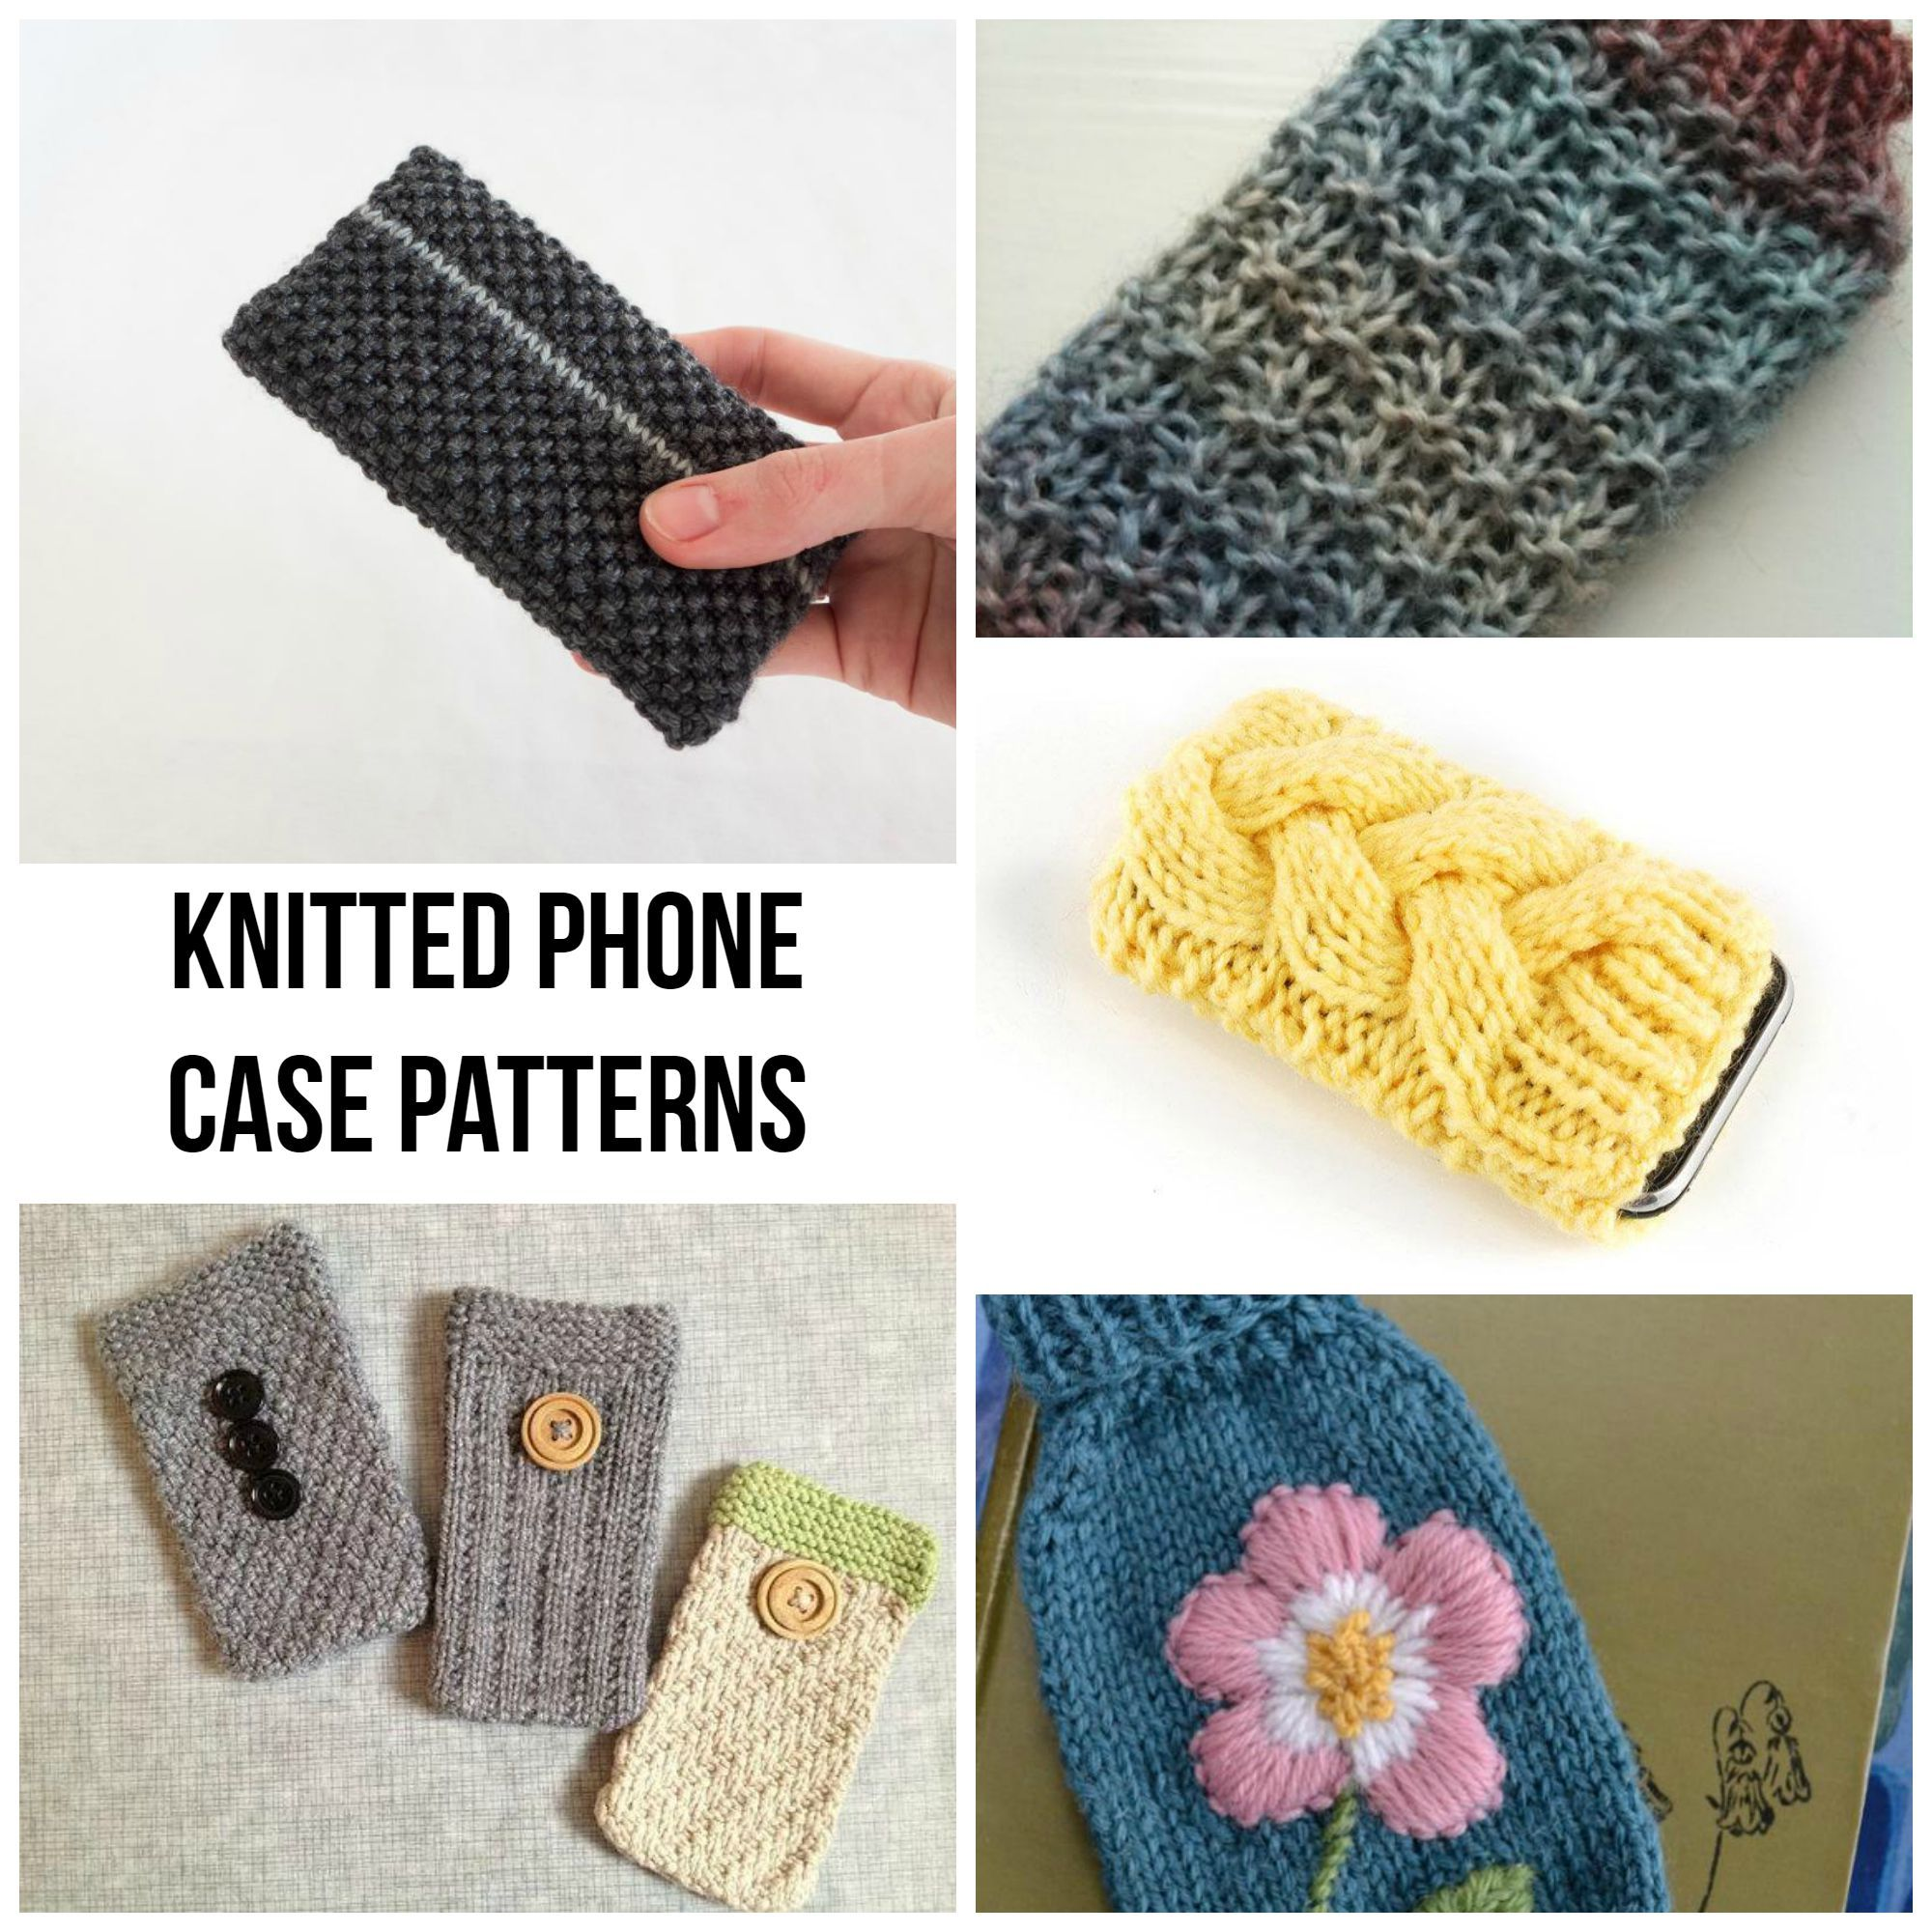 Quick Knitted Phone Case Patterns - Craftsy | Tejido y Accesorios